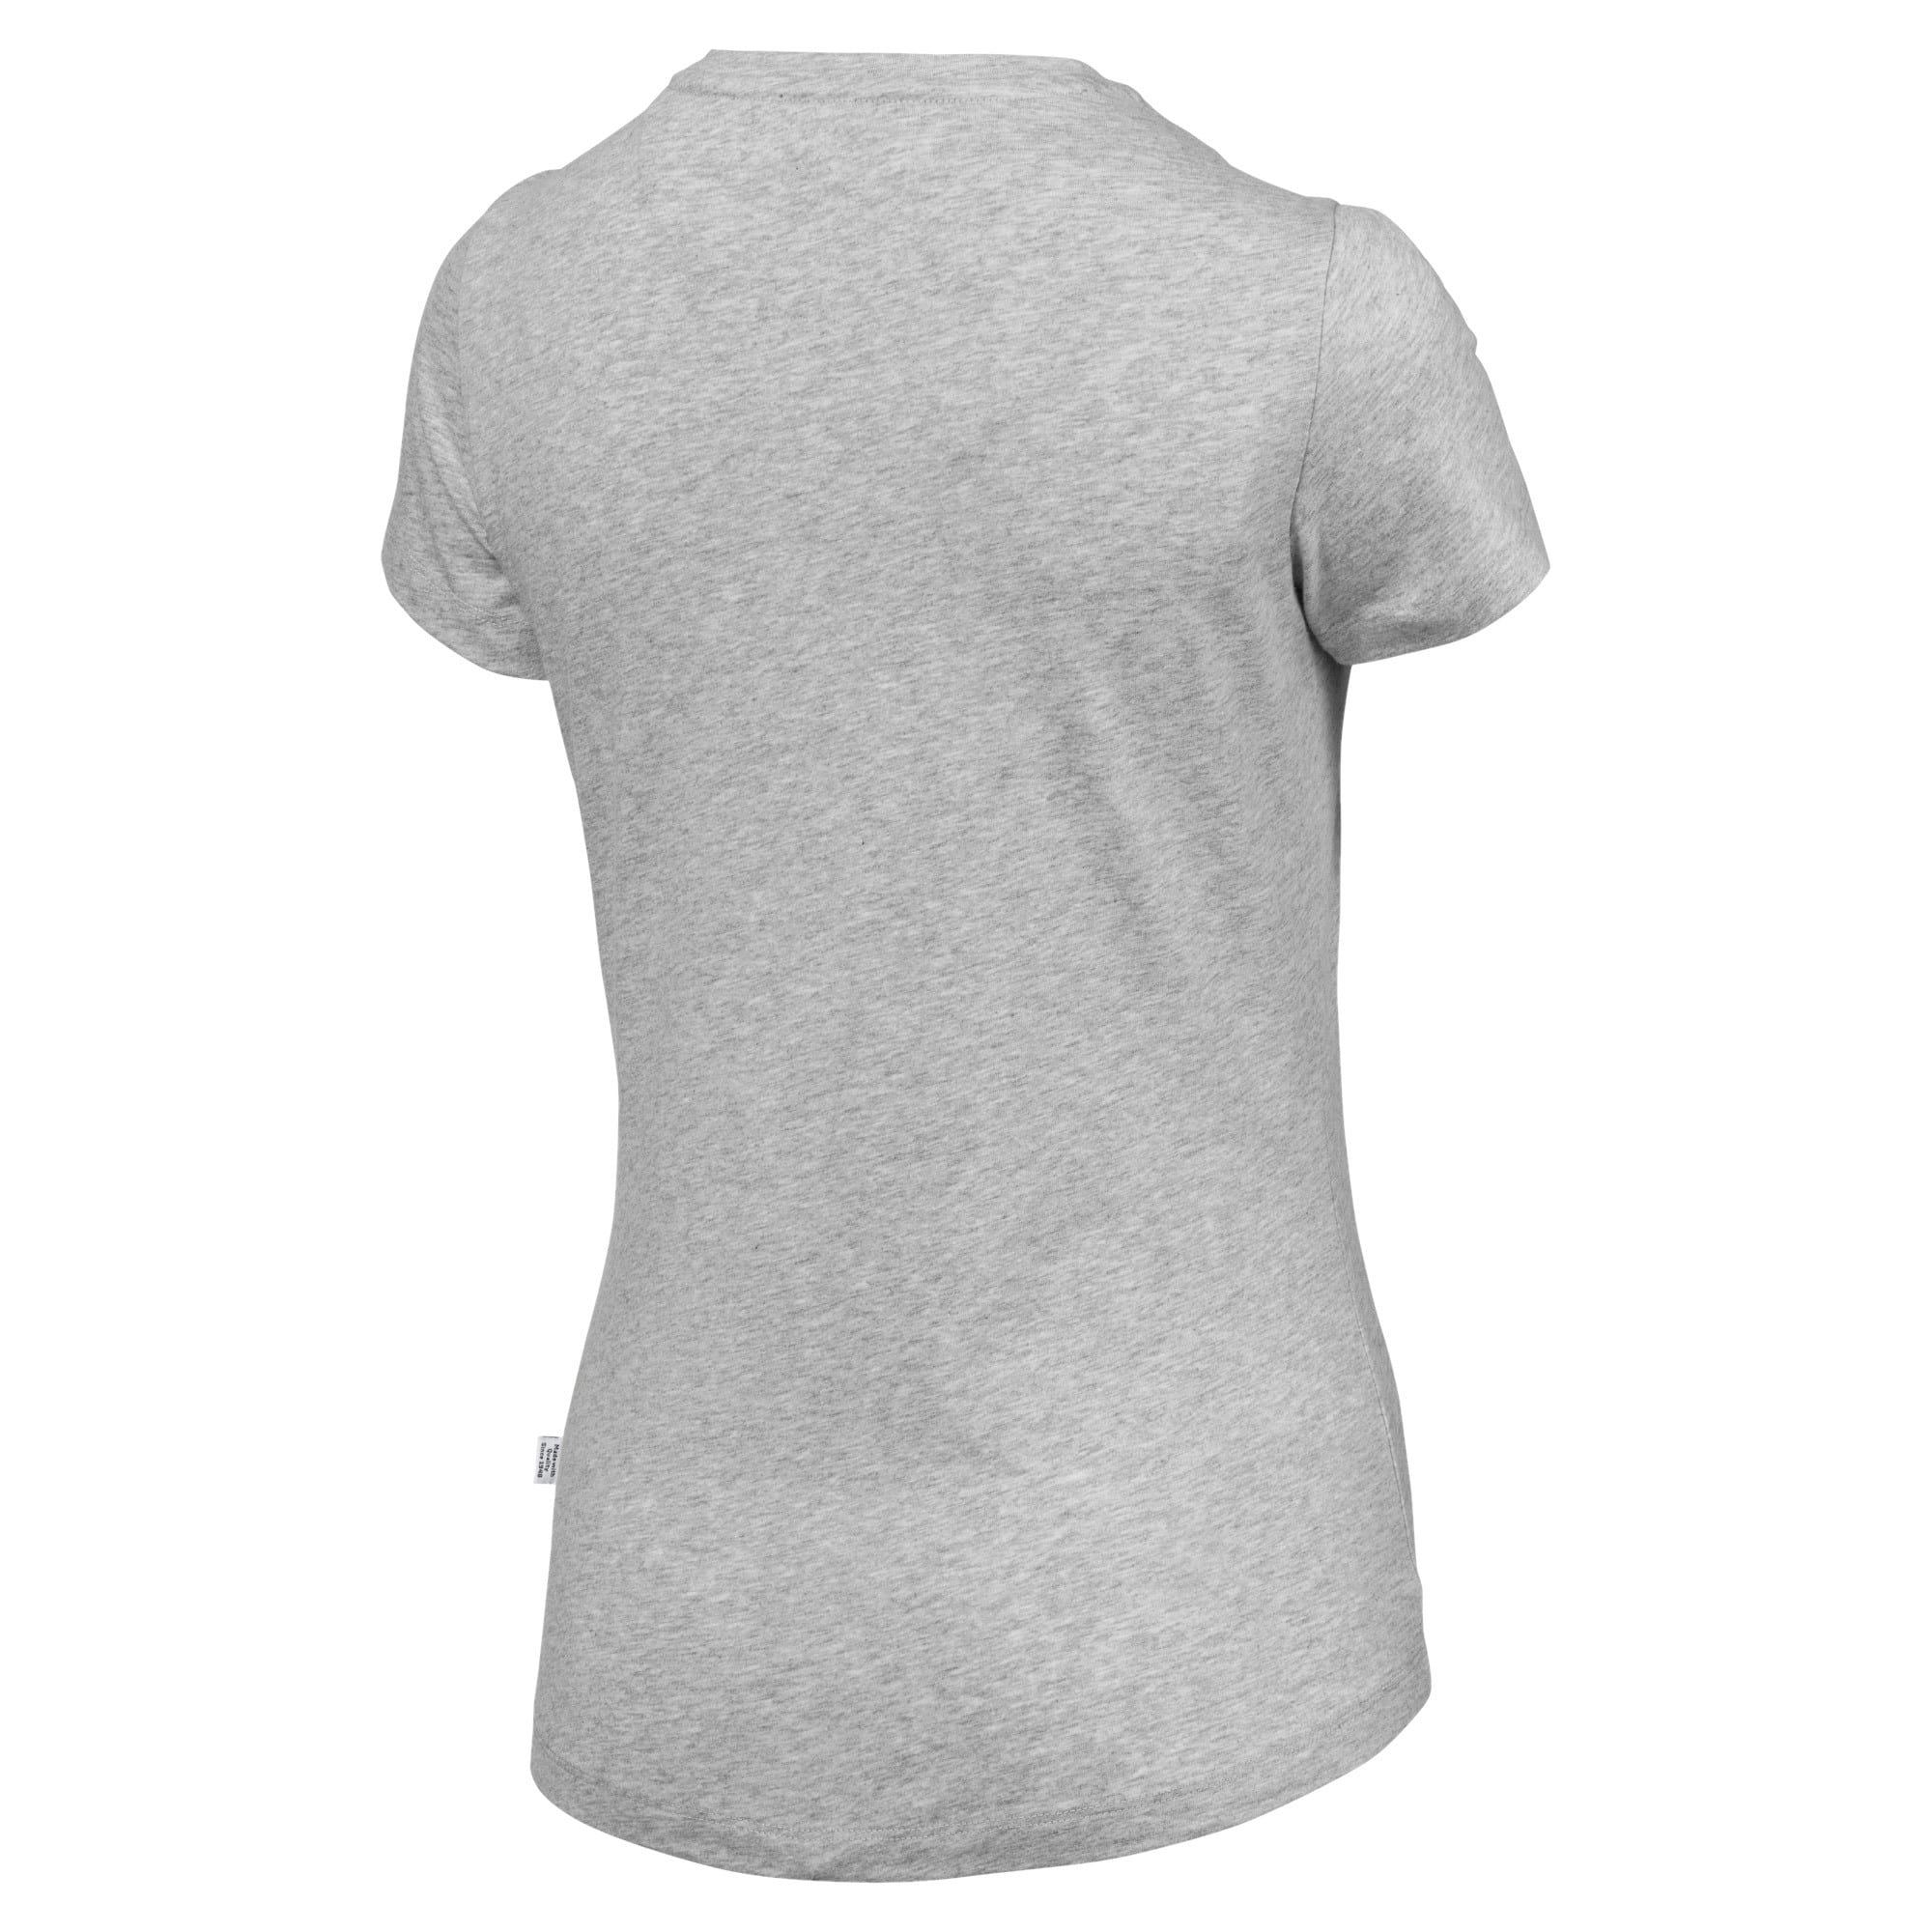 Thumbnail 5 of Essentials Women's Tee, Light Gray Heather, medium